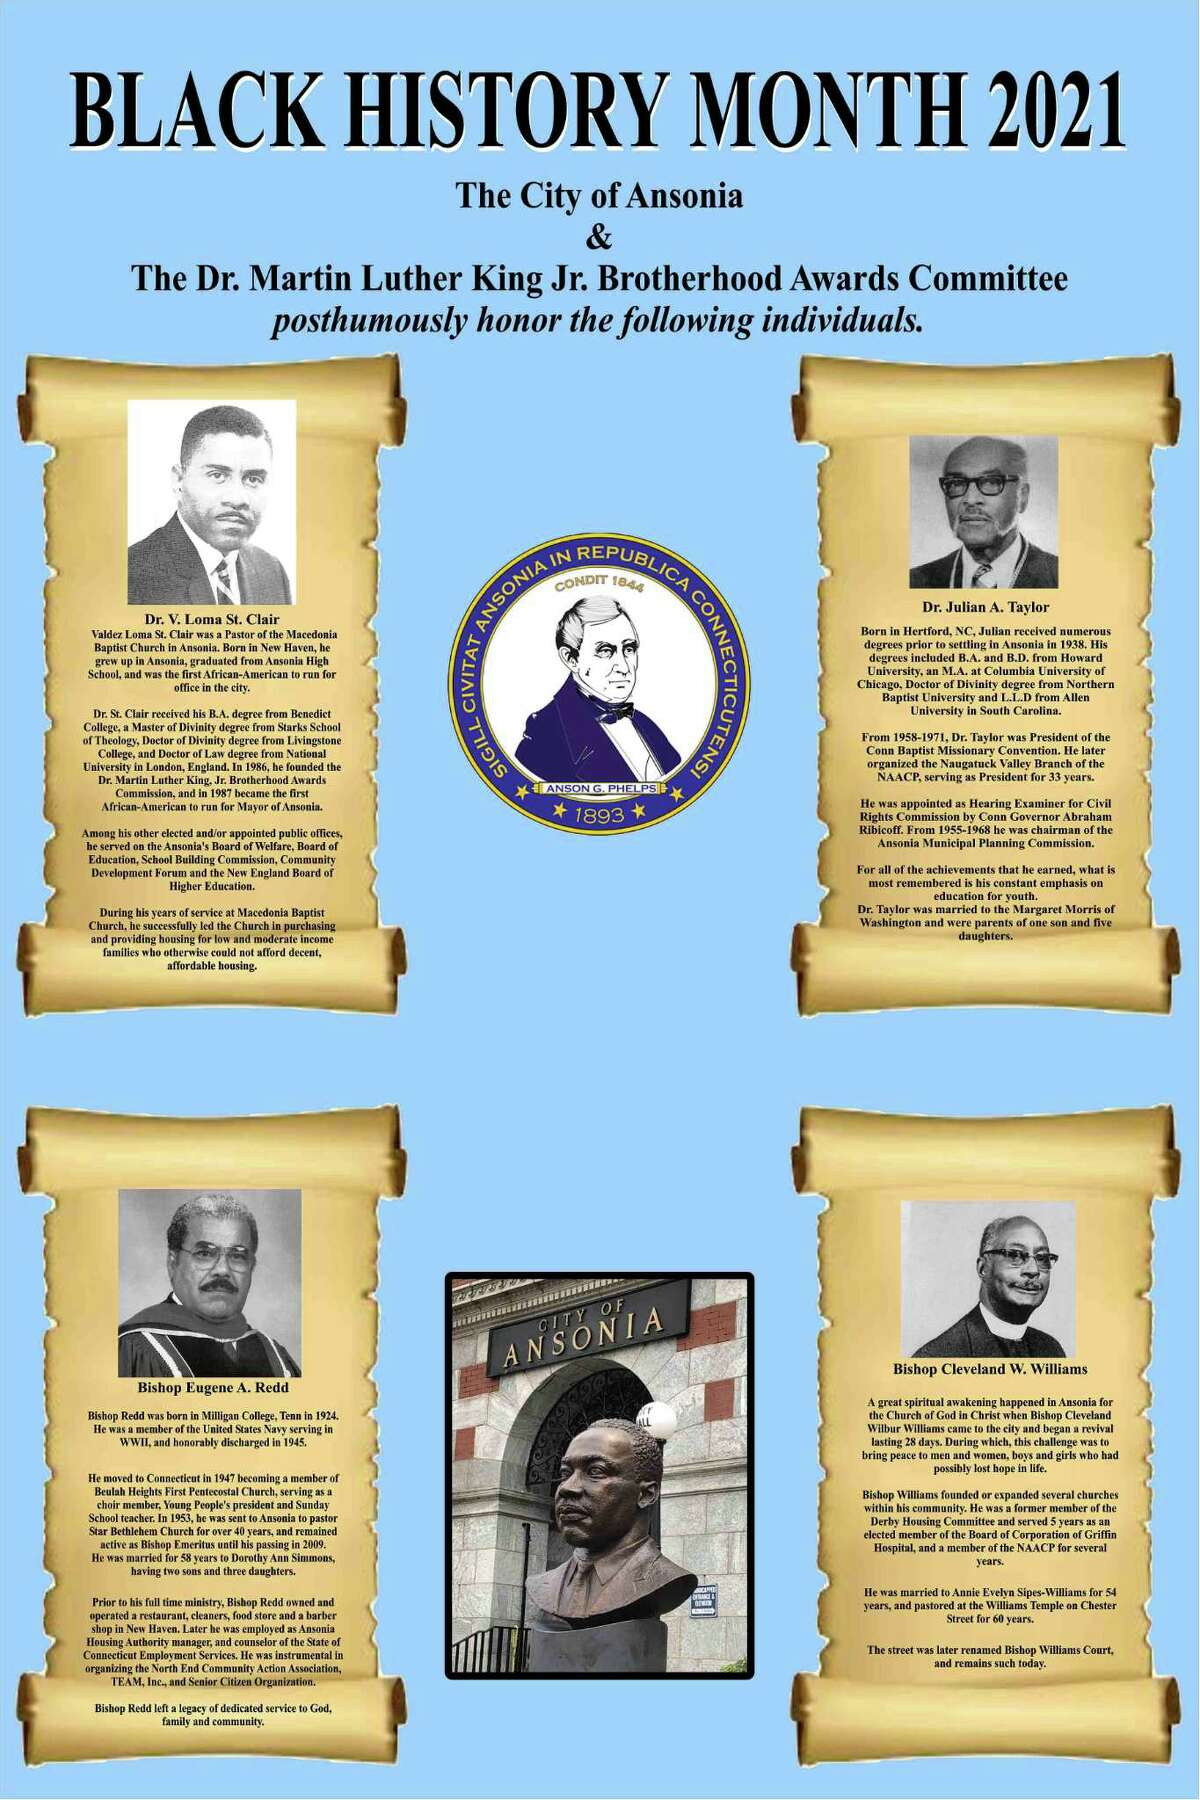 Poster from the Dr. Martin Luther King Jr. Brotherhood Awards Program